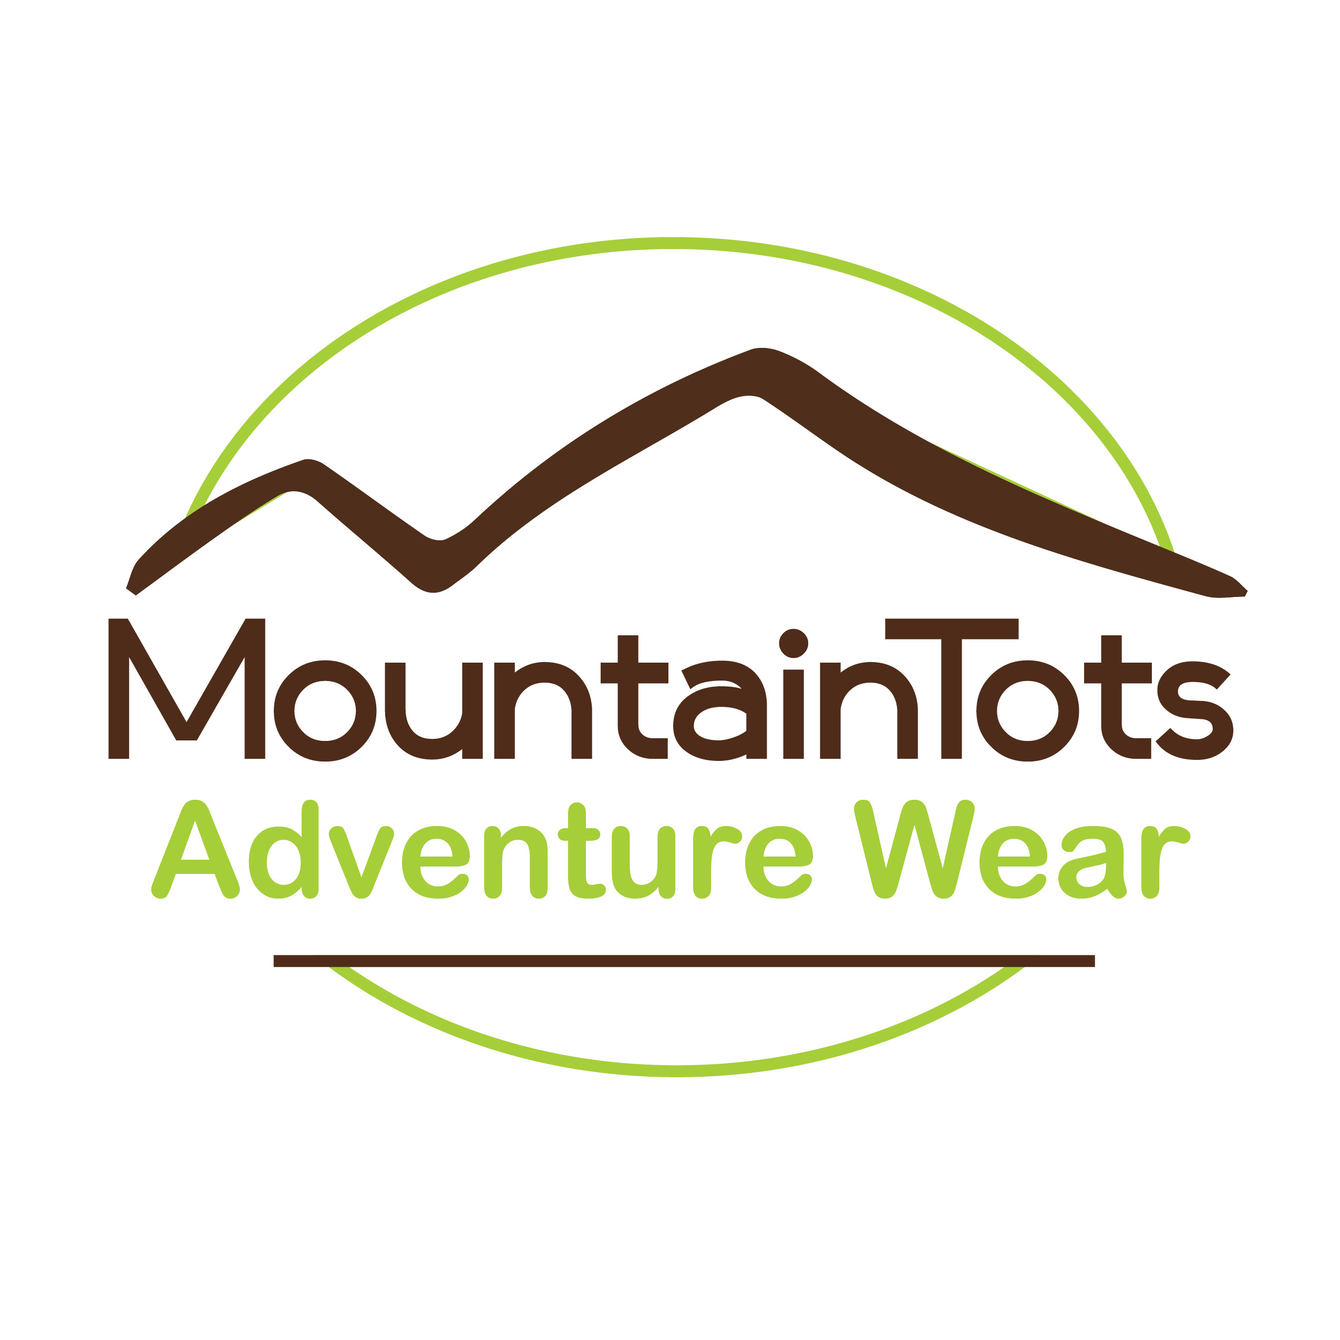 MountainTots Adventure Wear